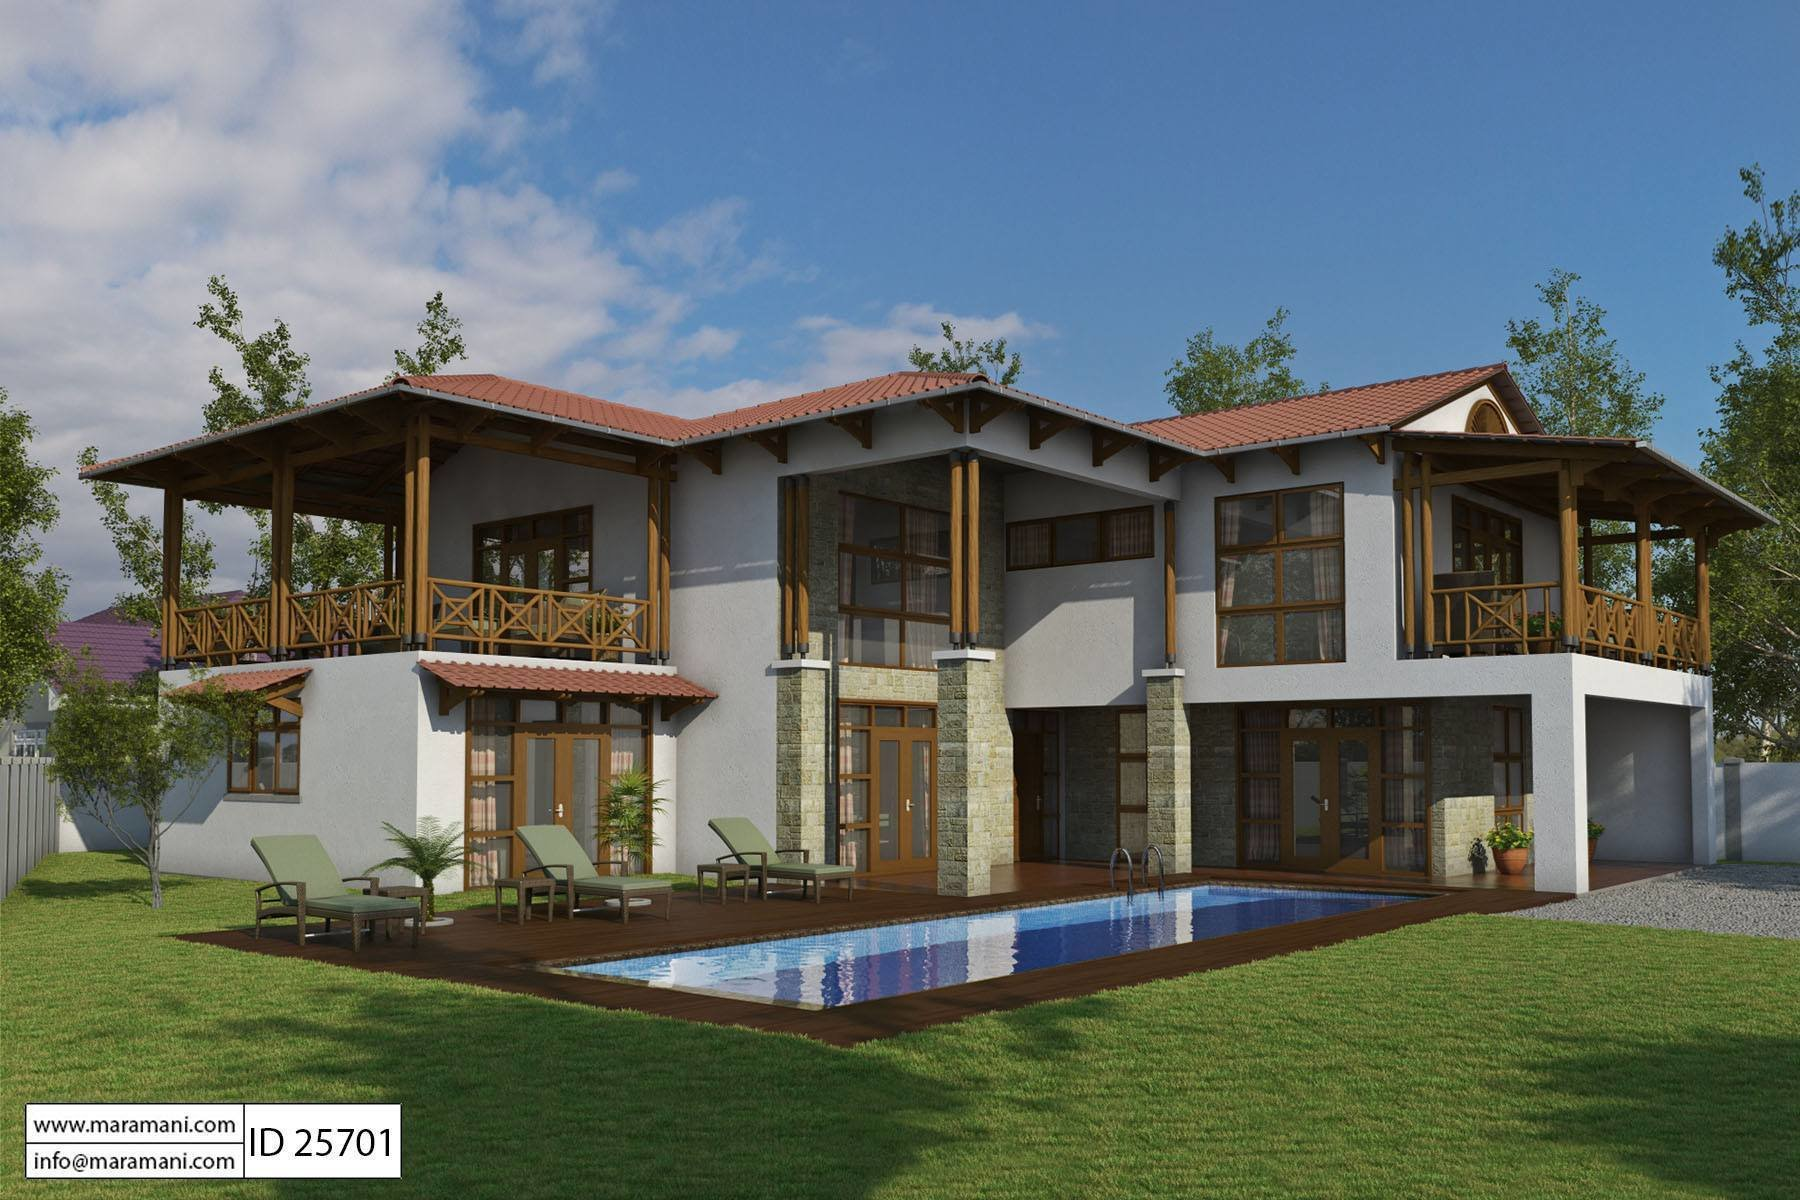 Best Bali Style House With 5 Bedrooms Id 25701 House Plans With Pictures